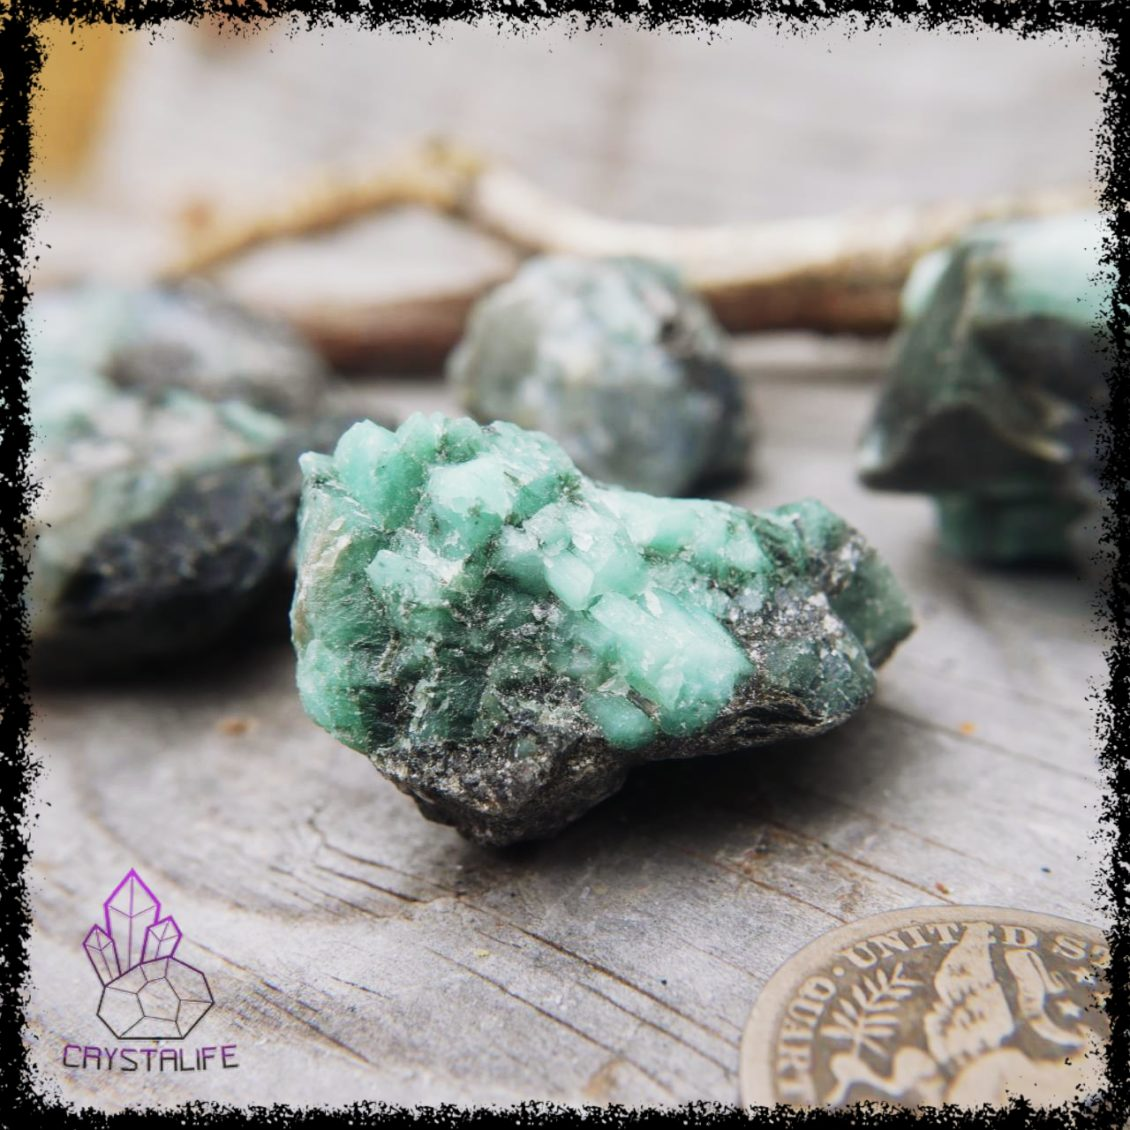 Rough emerald crystal on matrix. Healing stones and crystal jewelry in the holistic shop.